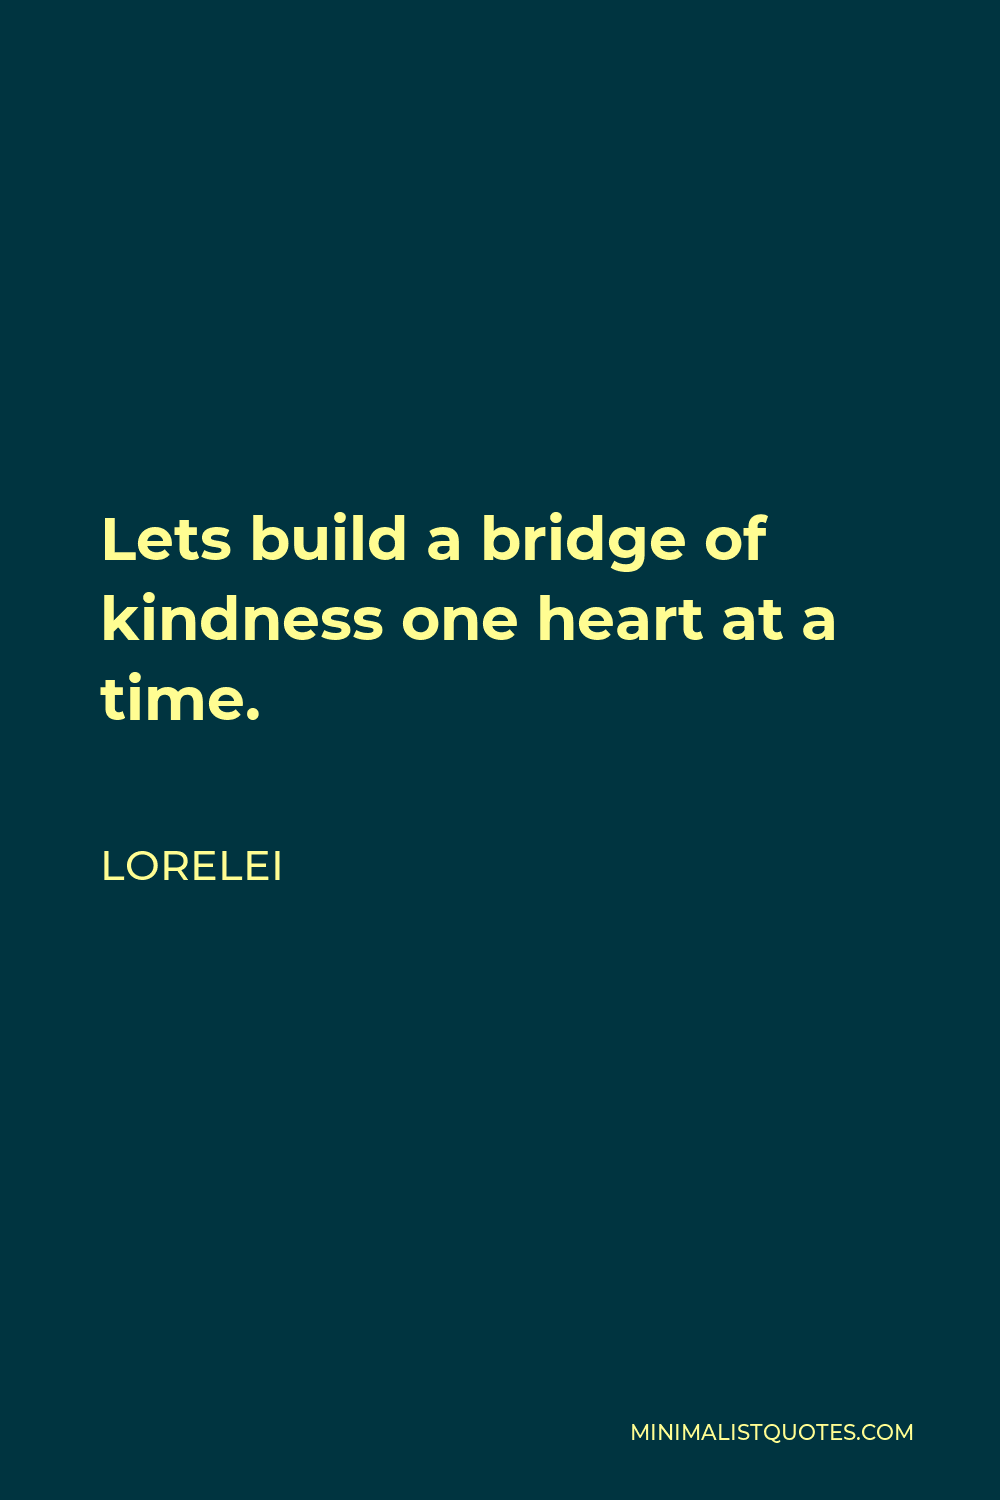 Lorelei Quote - Lets build a bridge of kindness one heart at a time.